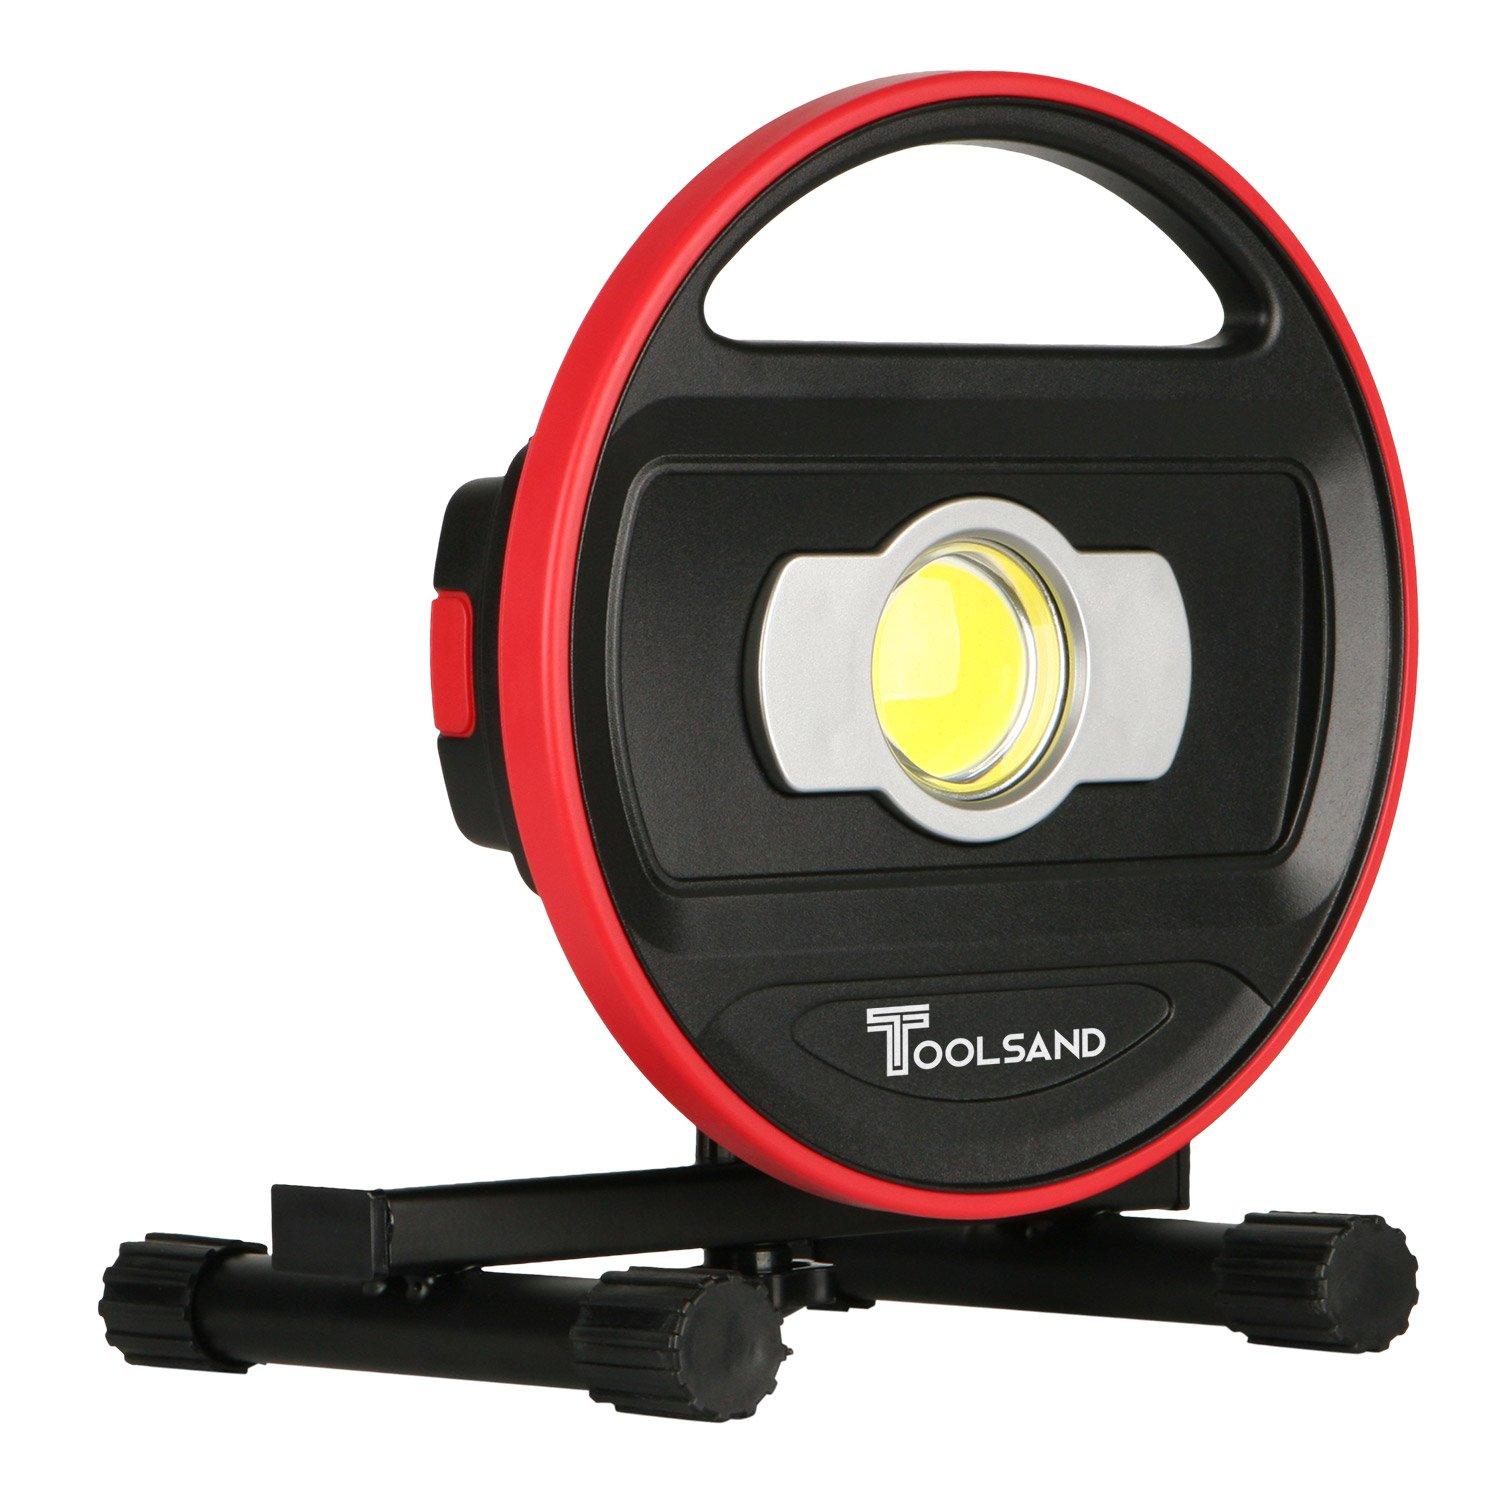 Toolsand Portable Cordless Rechargeable LED Worklight Floodlight, High Power (1200 Lumens)